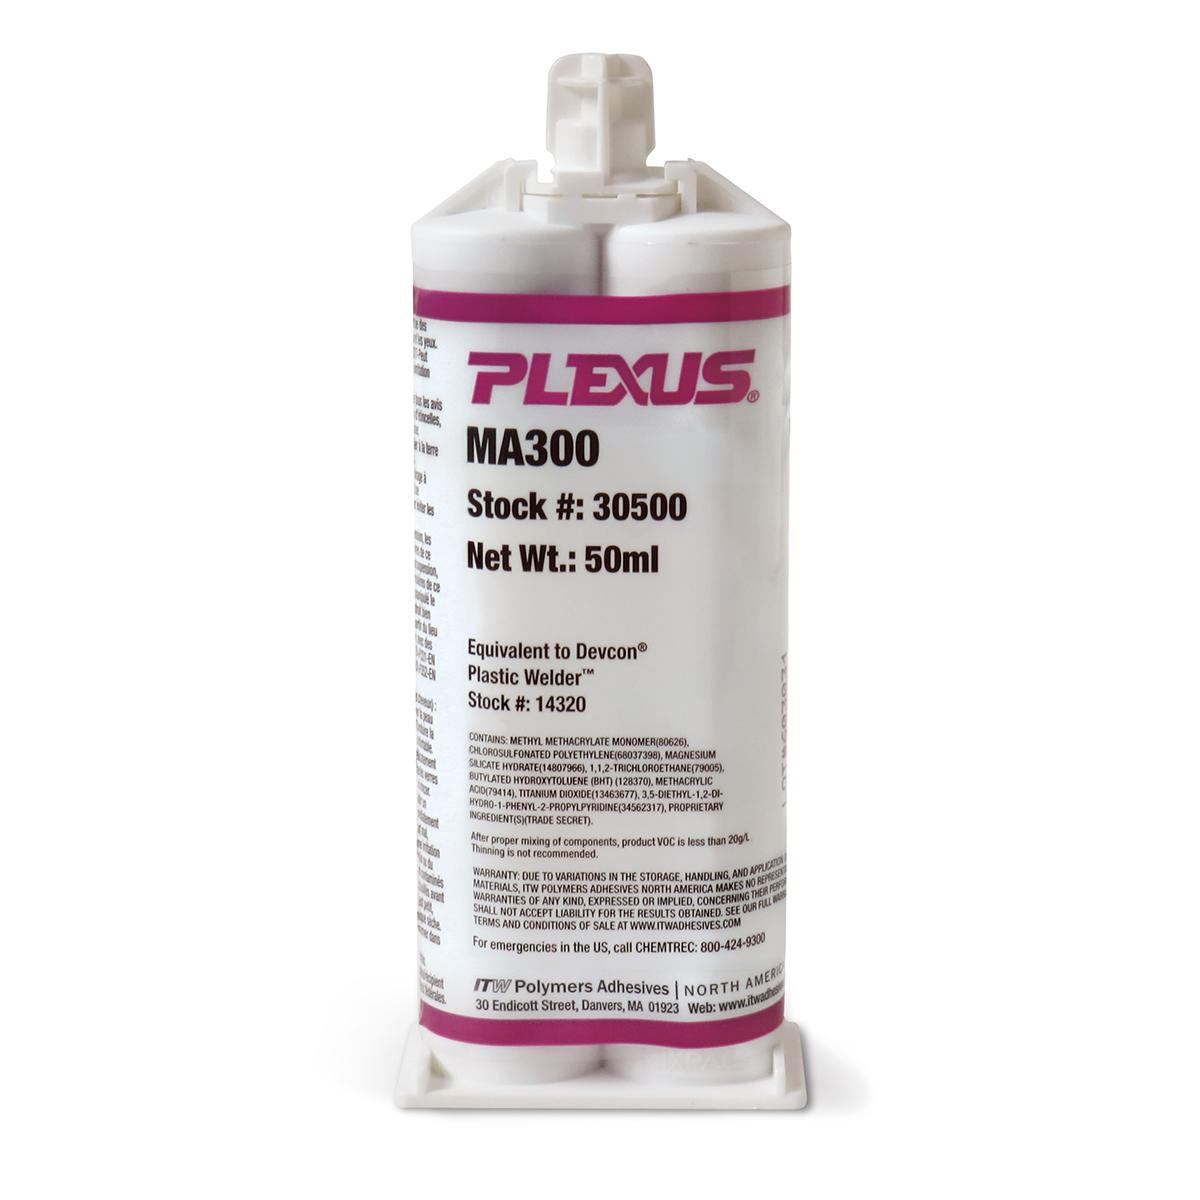 PLEXUS® MA300 - 50ml 1:1 Ratio Twin Cartridge- Cream  1 Each